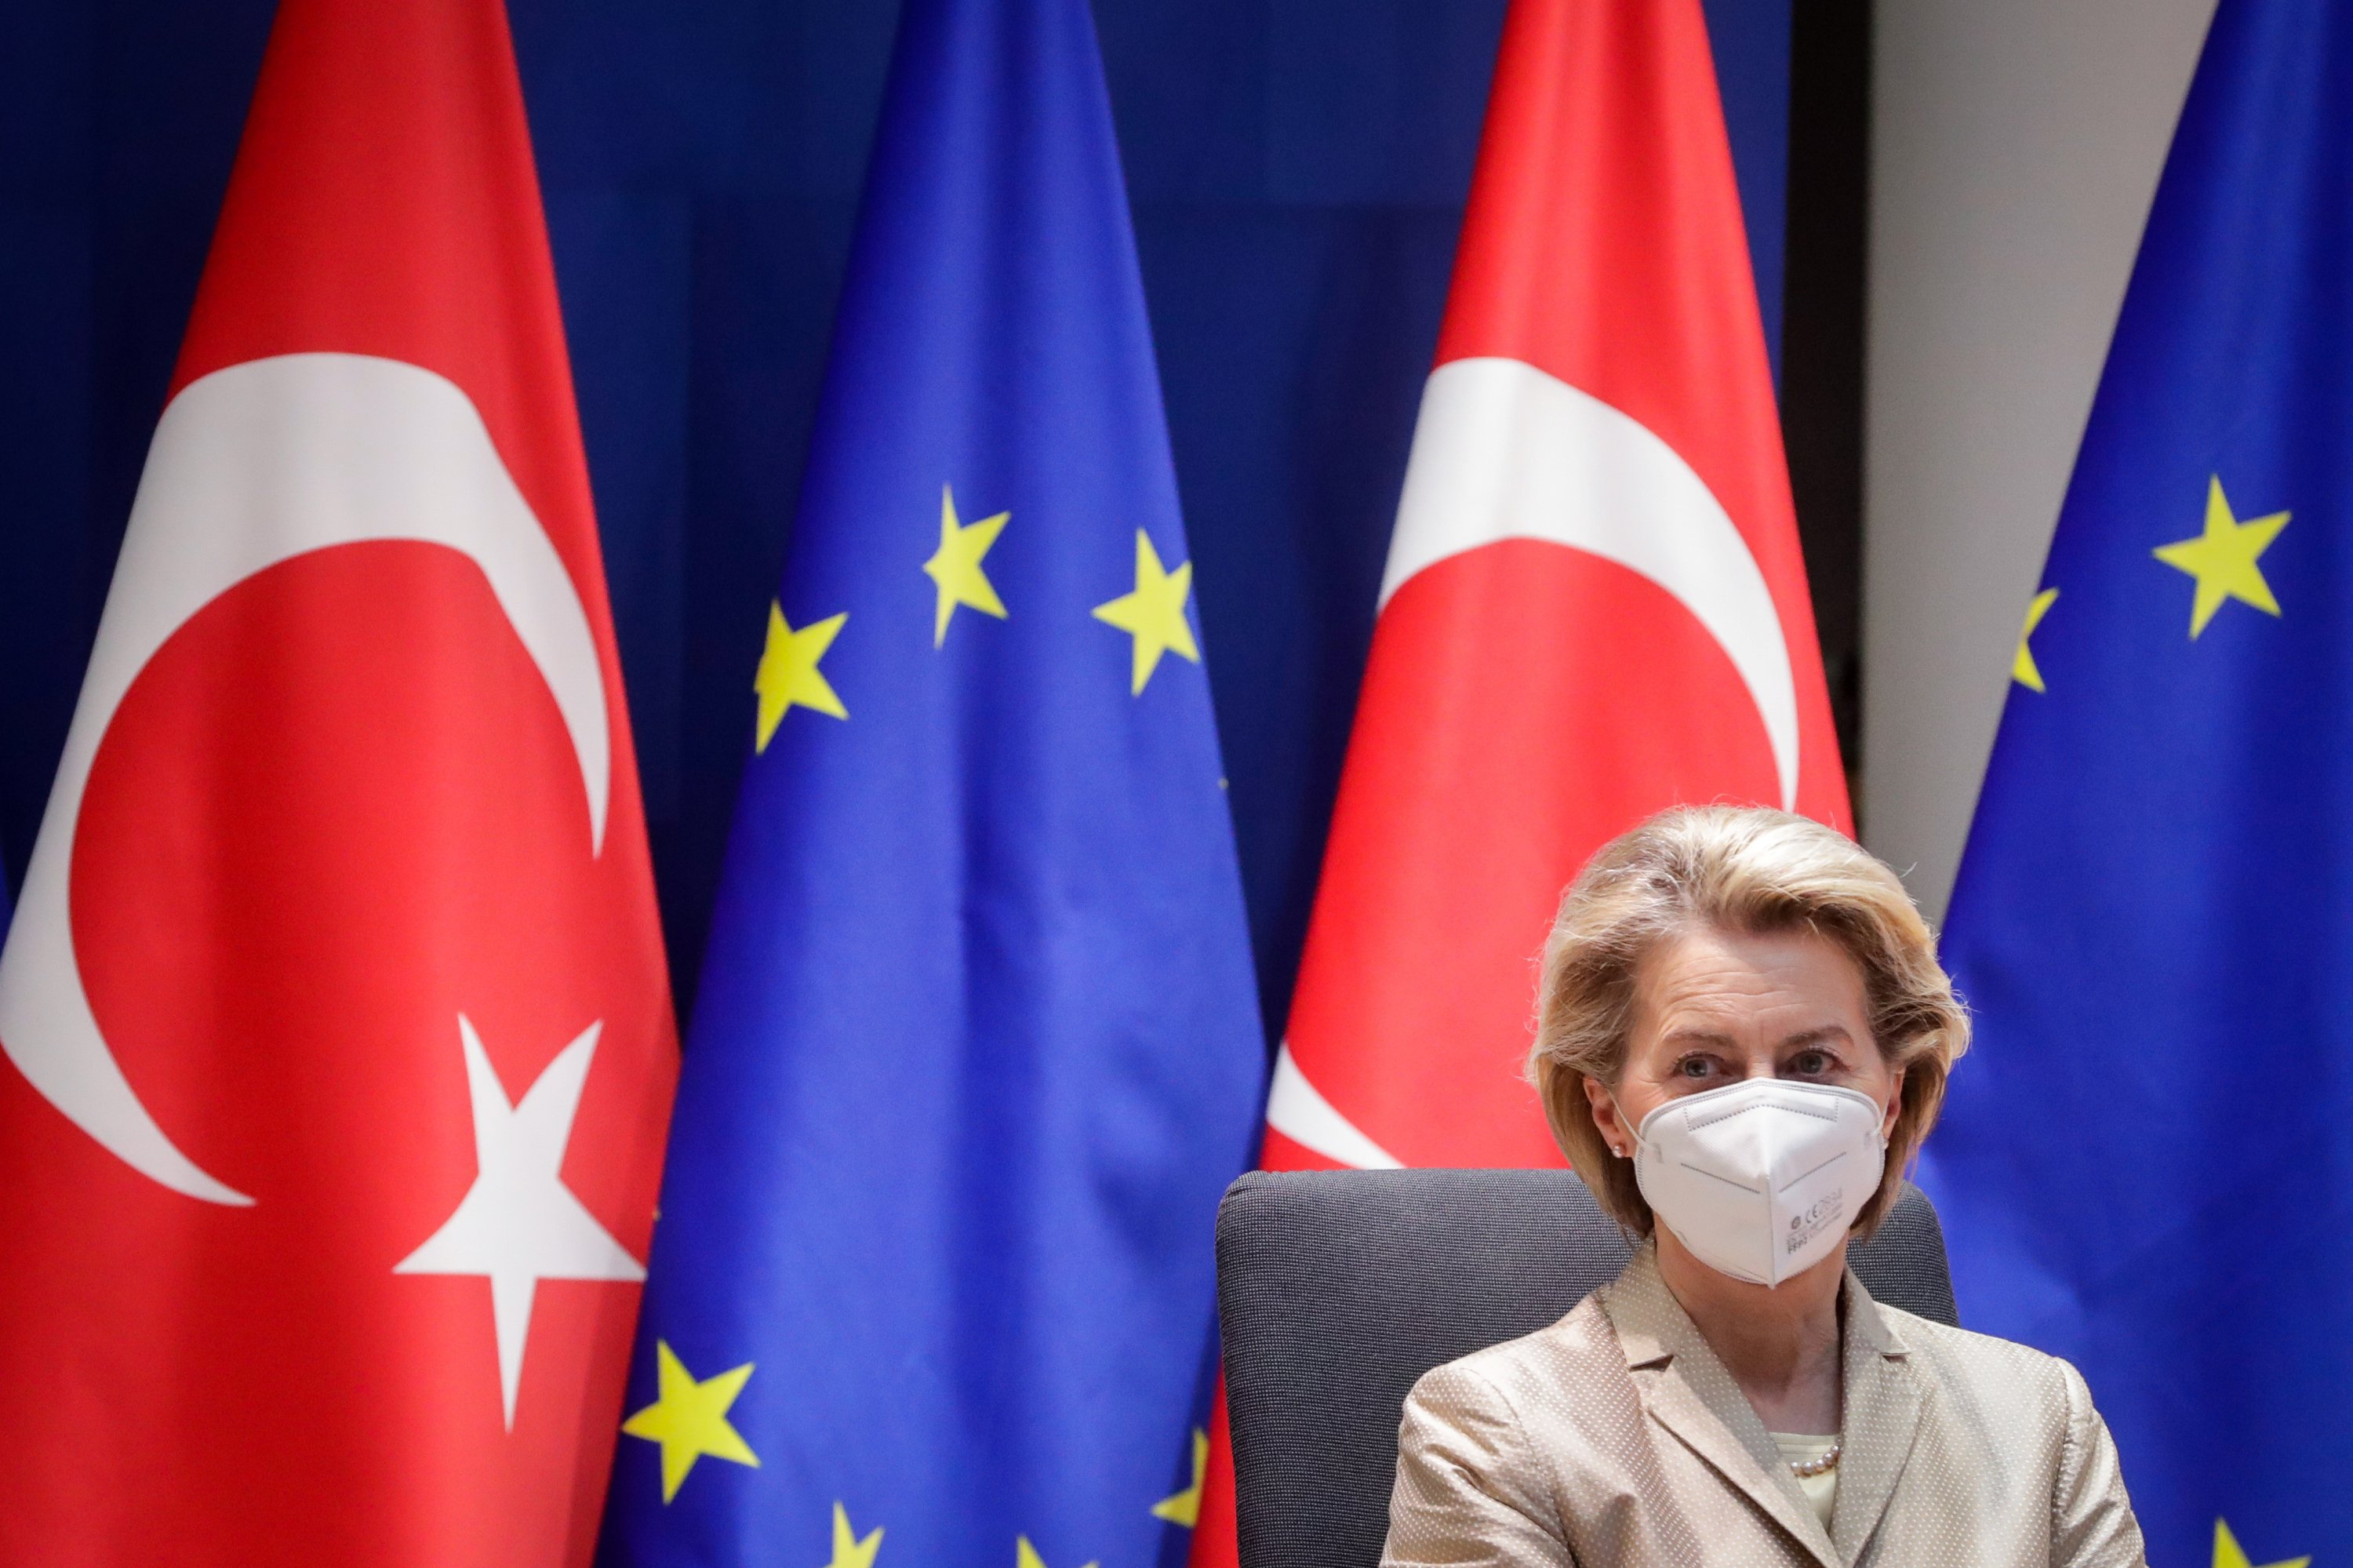 European Commission President Ursula von der Leyen wears a mask as she attends a video call with Turkey's President Recep Tayyip Erdoğan in Brussels, Belgium, March 19, 2021. (Reuters Photo)